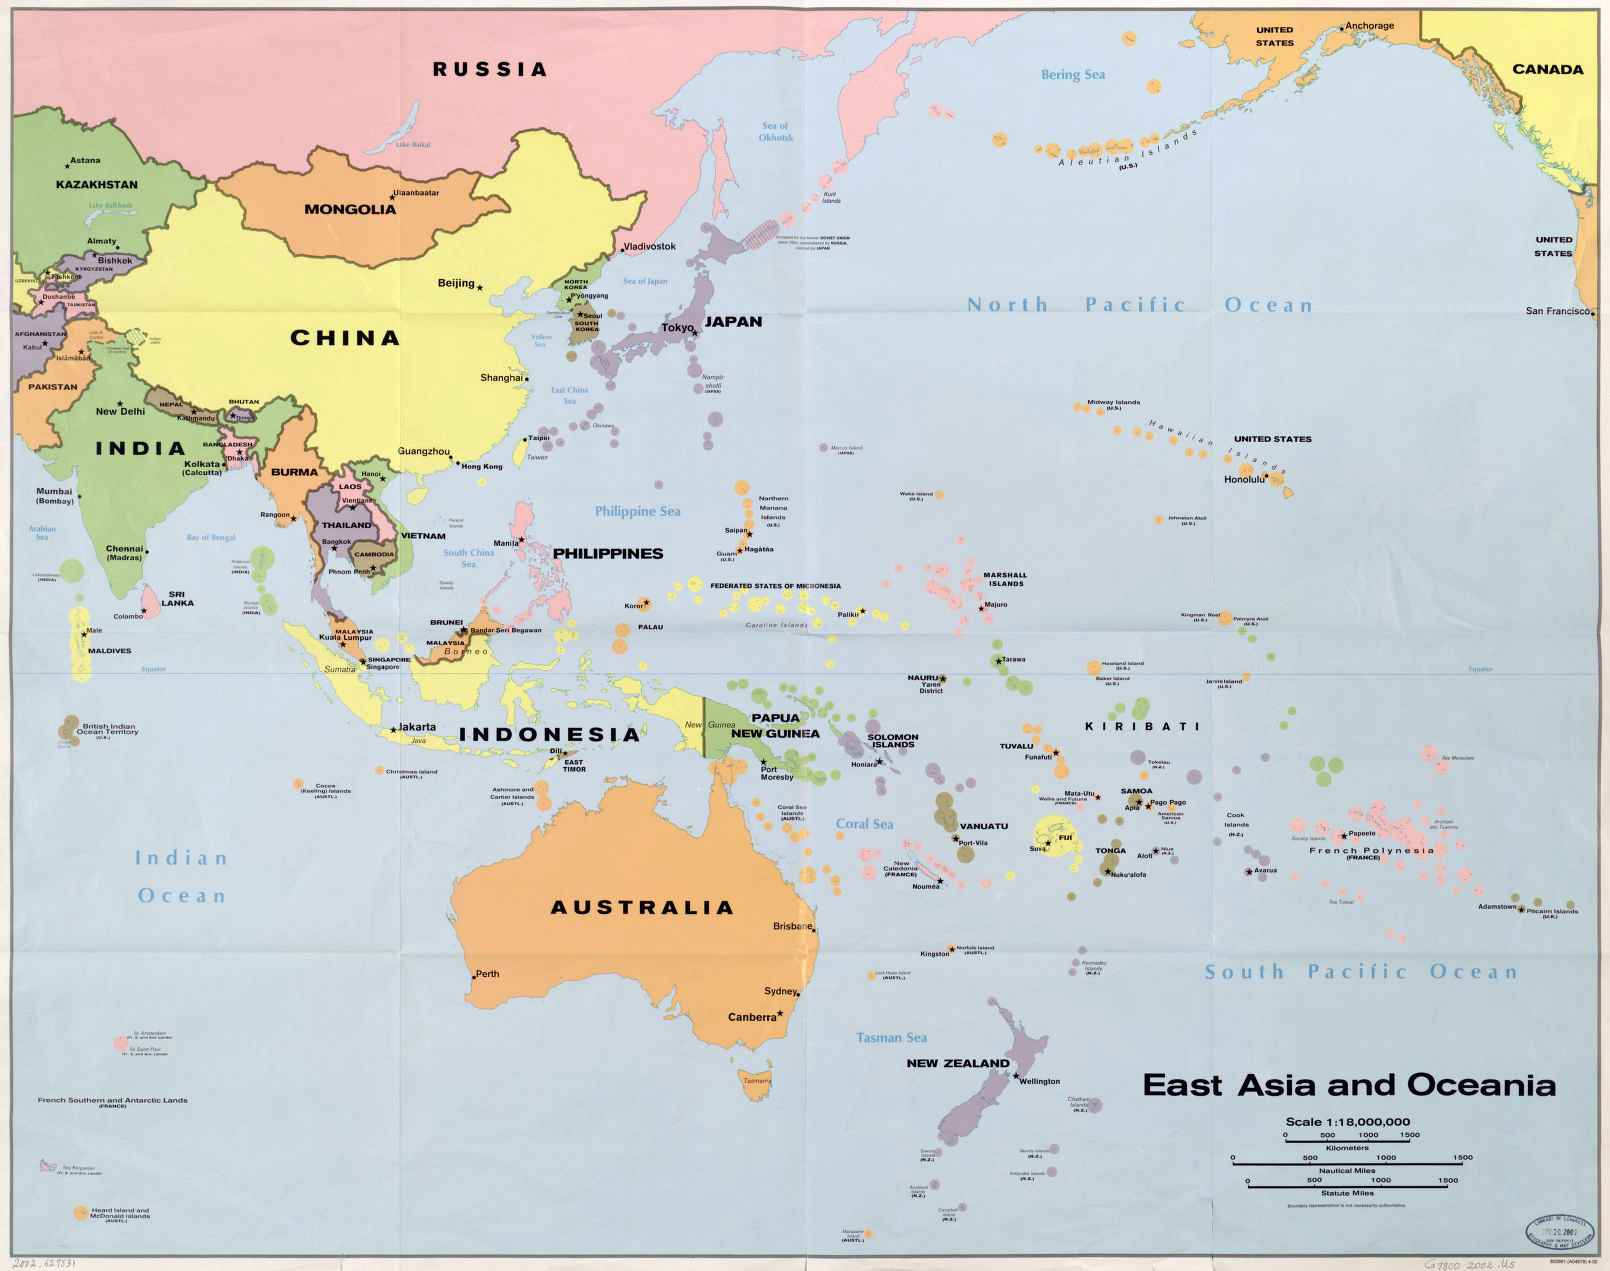 Detailed Political Map Of East Asia And Oceania Oceania - Oceania map